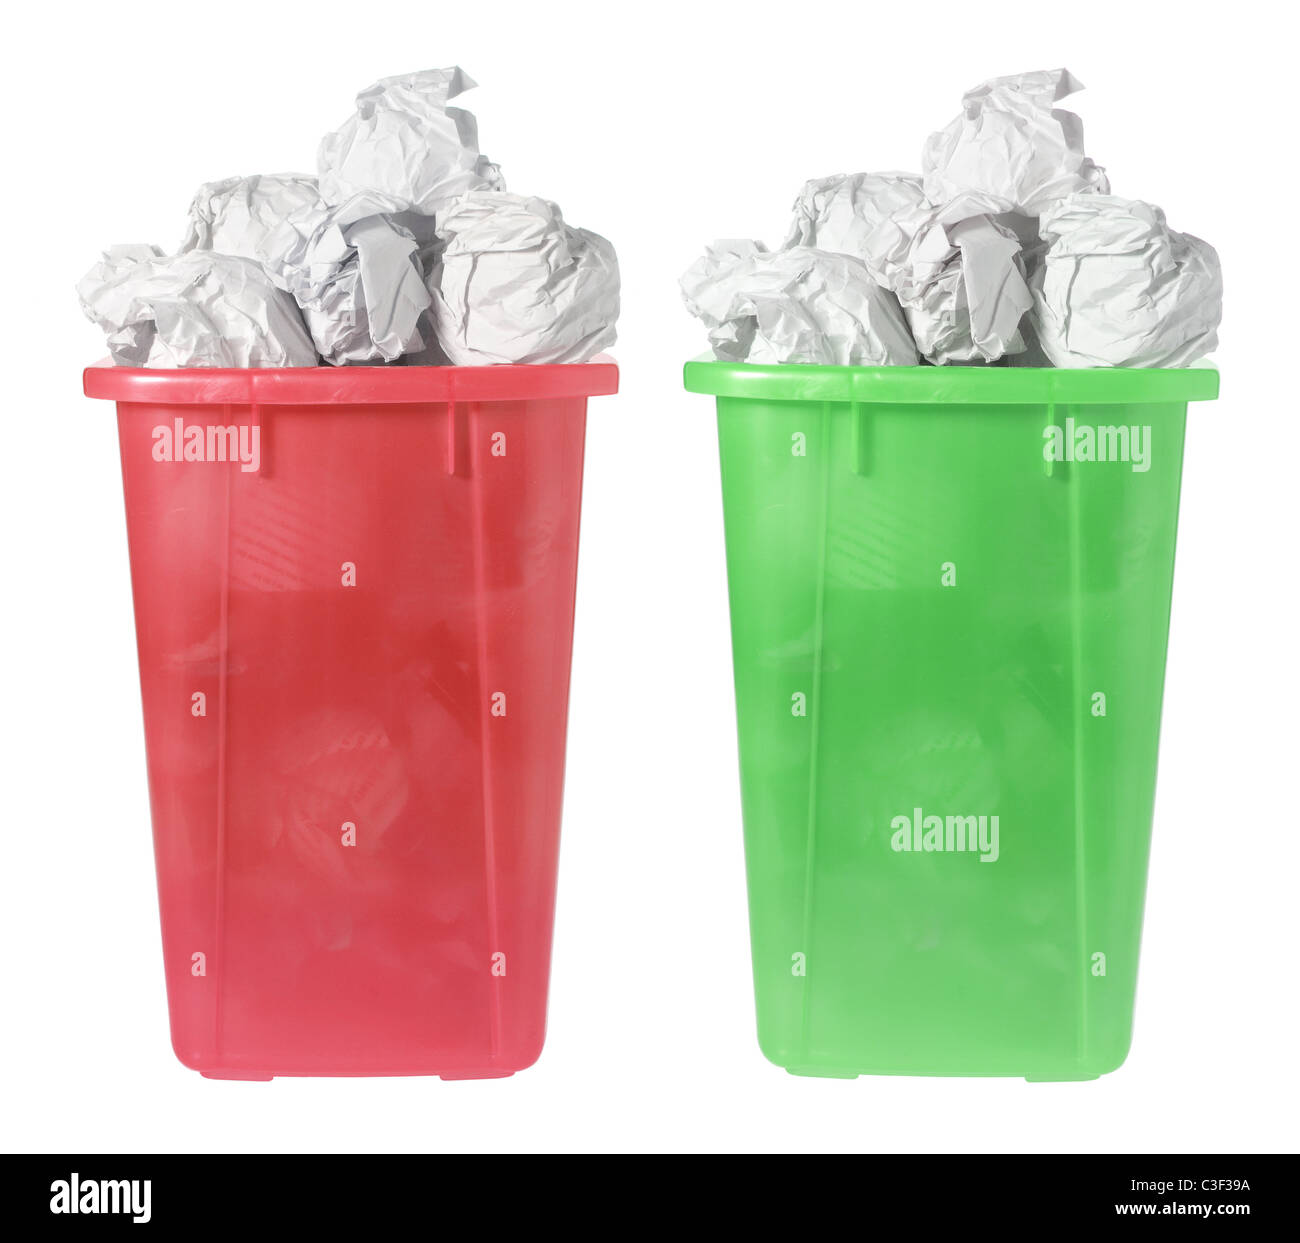 Waste Paper Bins Stock Photo